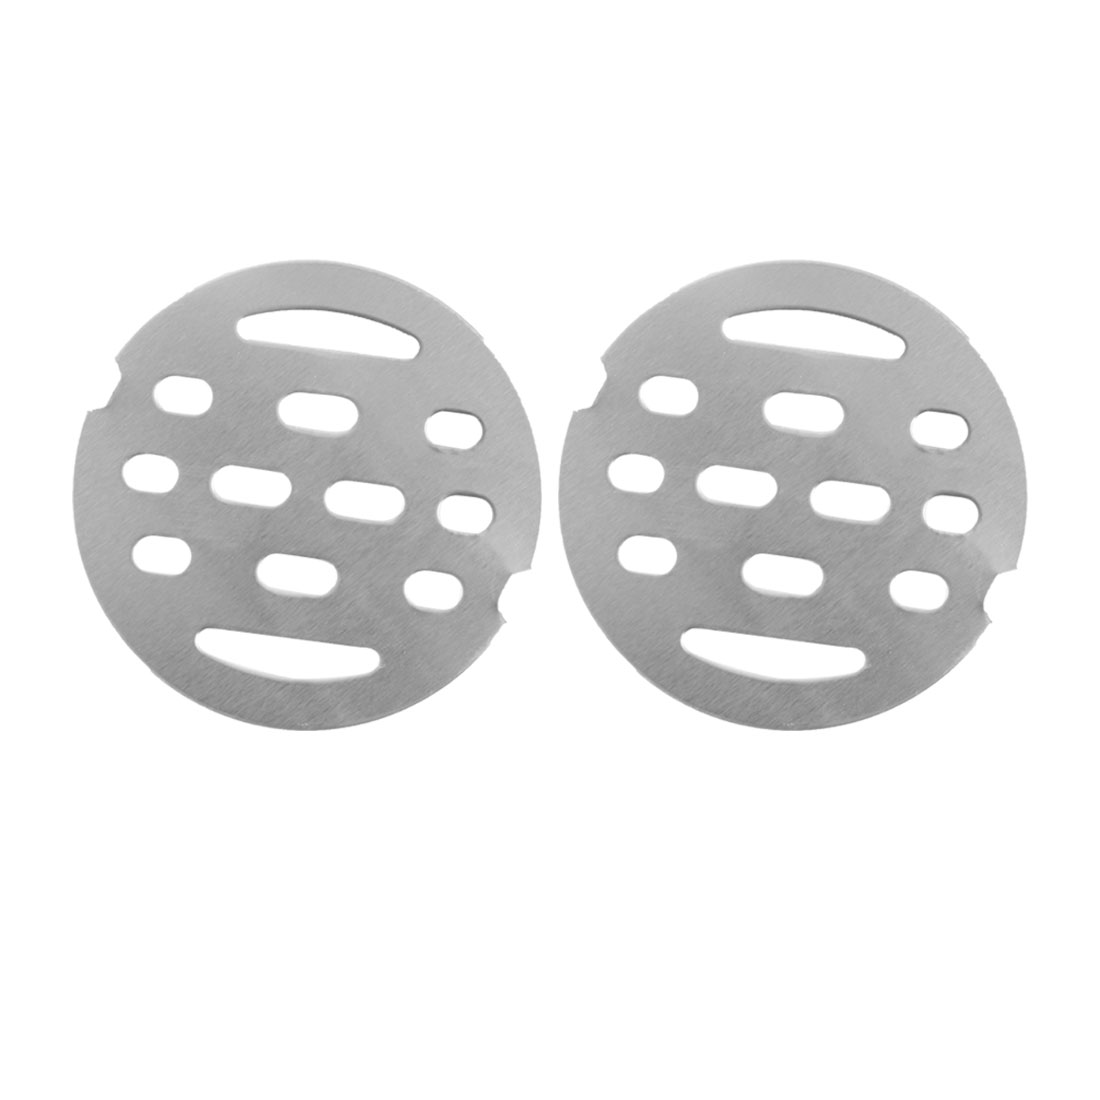 "2pcs 2.7"" Snap-in Floor Drain Cover Hair Catcher Sink Filter Strainer Stopper"